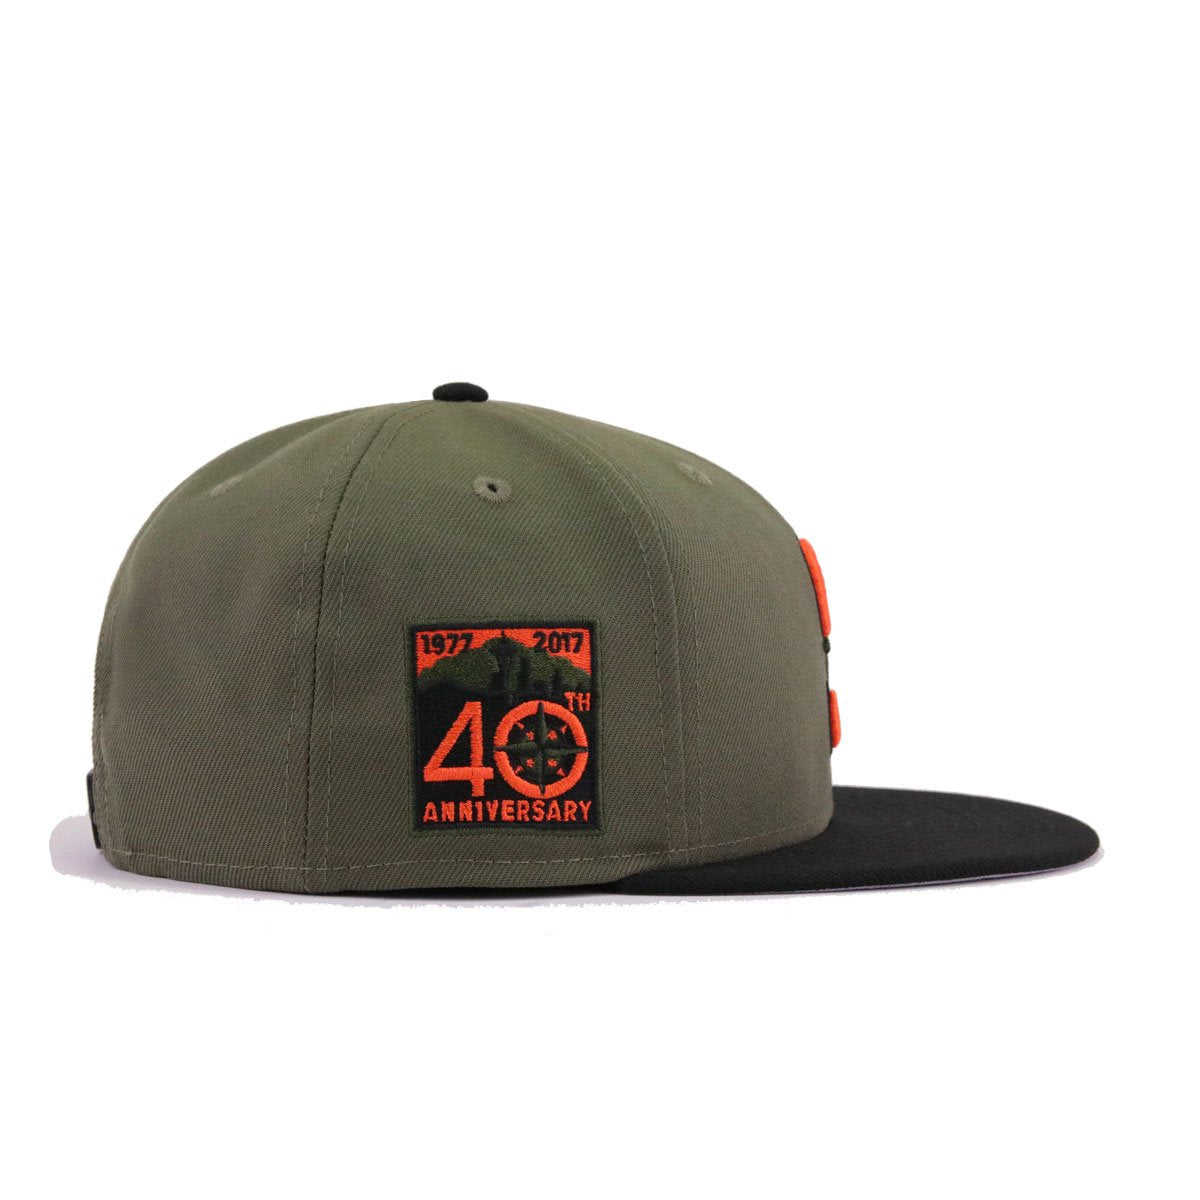 a6aa08607a152a Seattle Mariners New Olive Black Orangeade 40th Anniversary New Era 9Fifty  Snapback